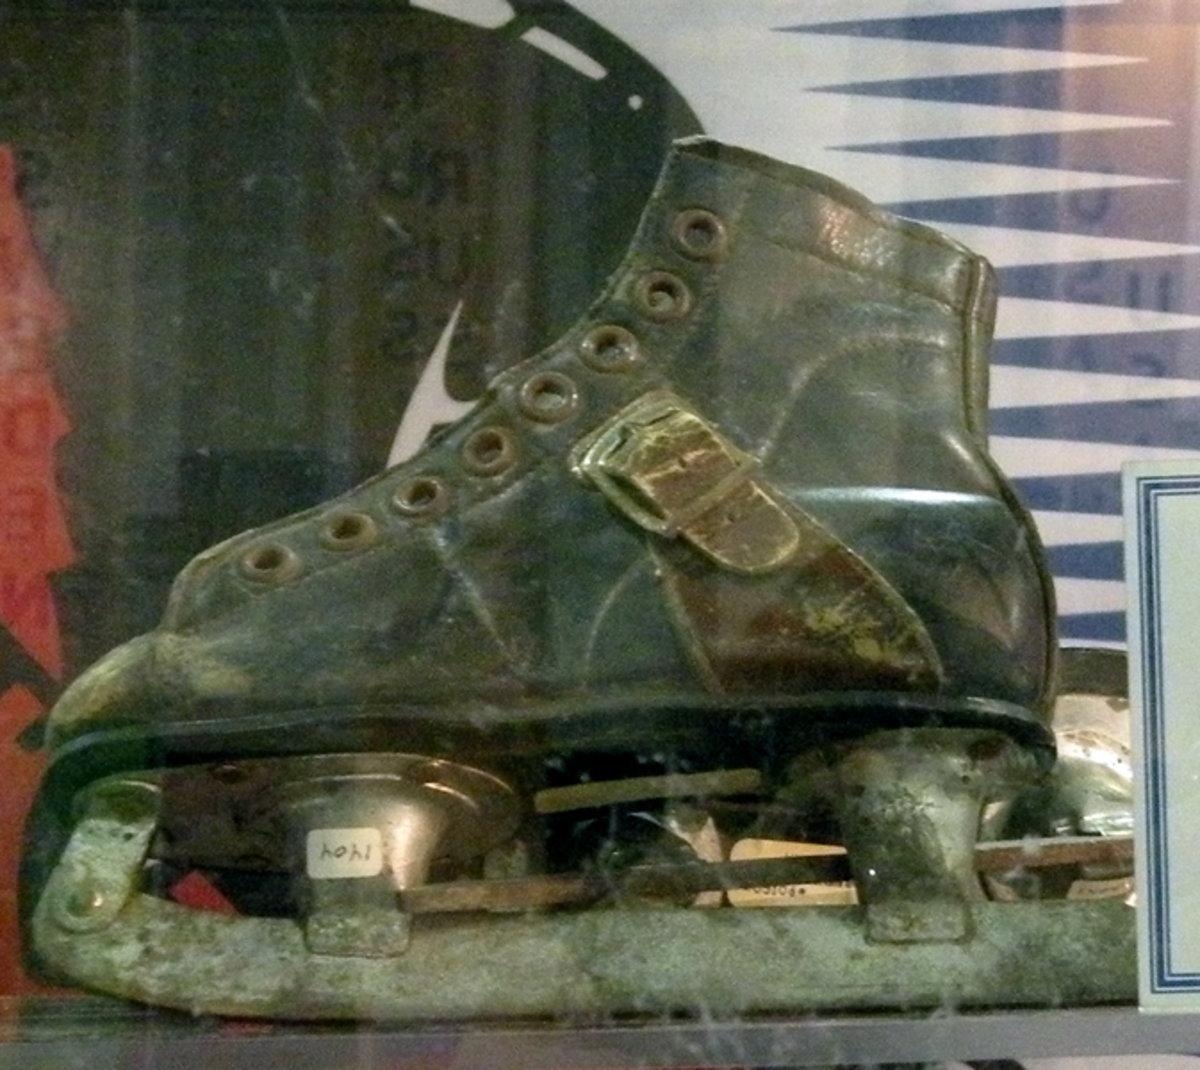 Wayne Gretzky's first pair of skates, worn when he was age 3.